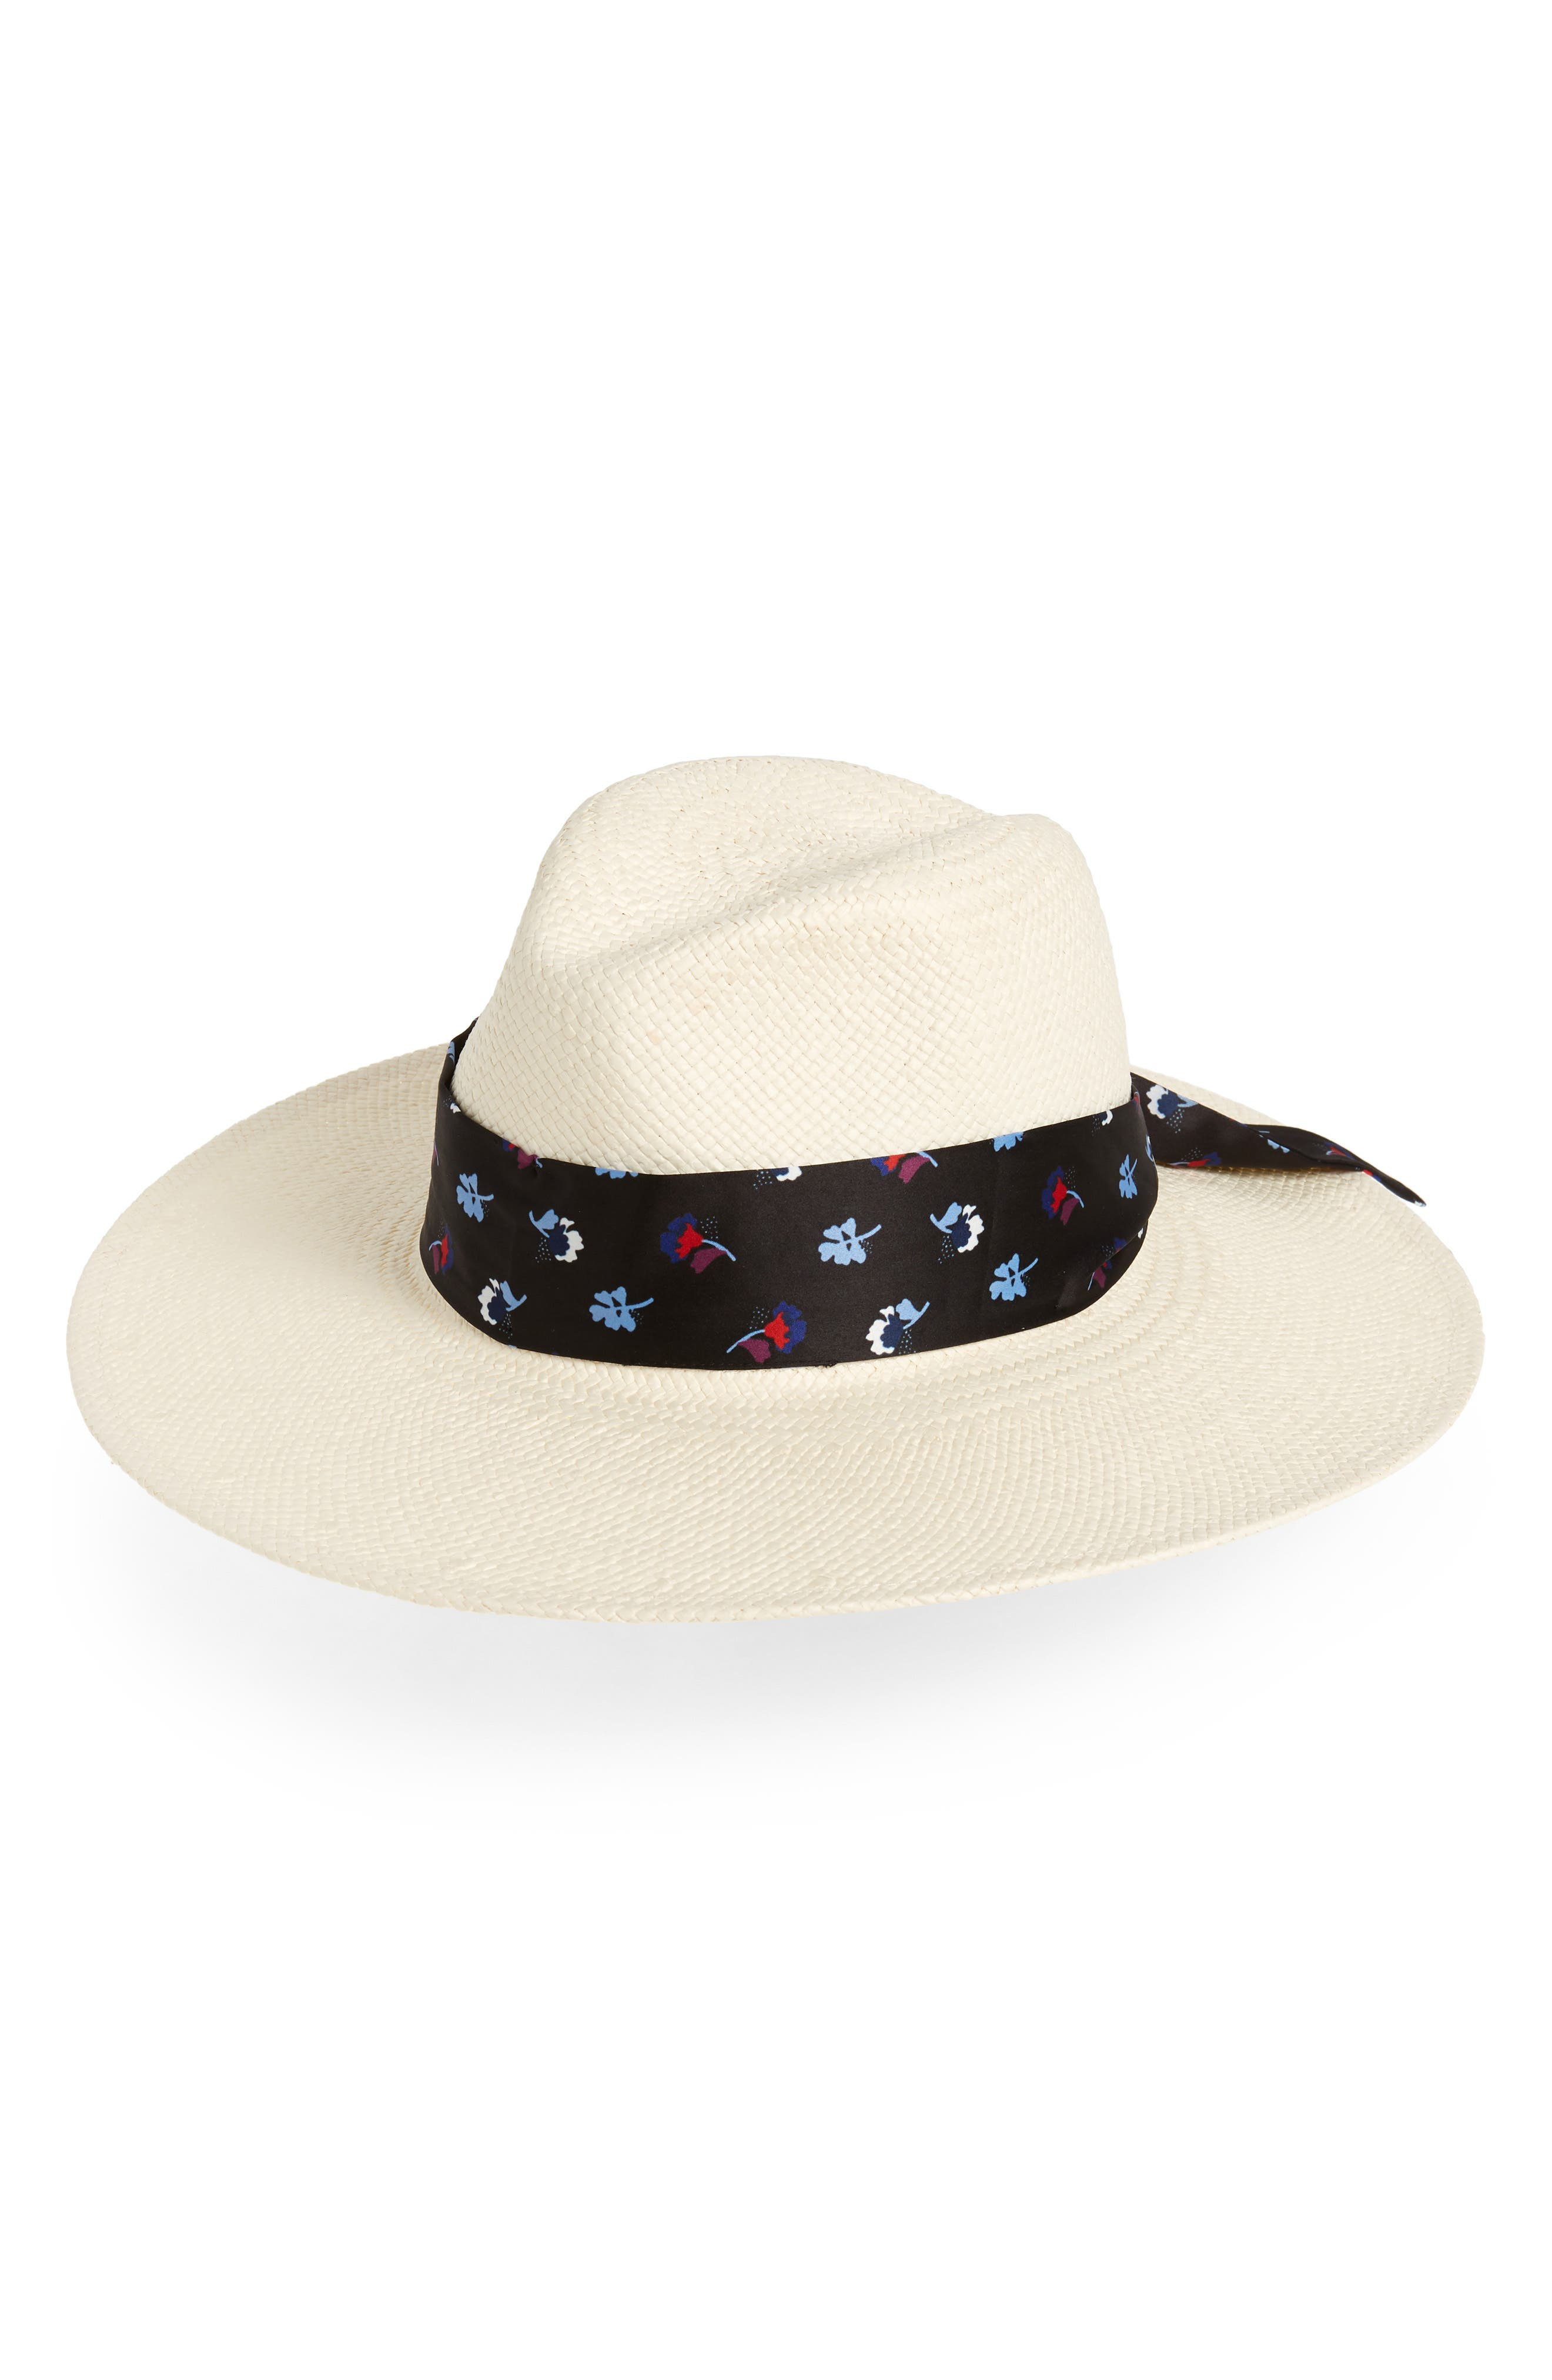 Floral Tie Straw Hat,                             Main thumbnail 1, color,                             WHITE COMBO